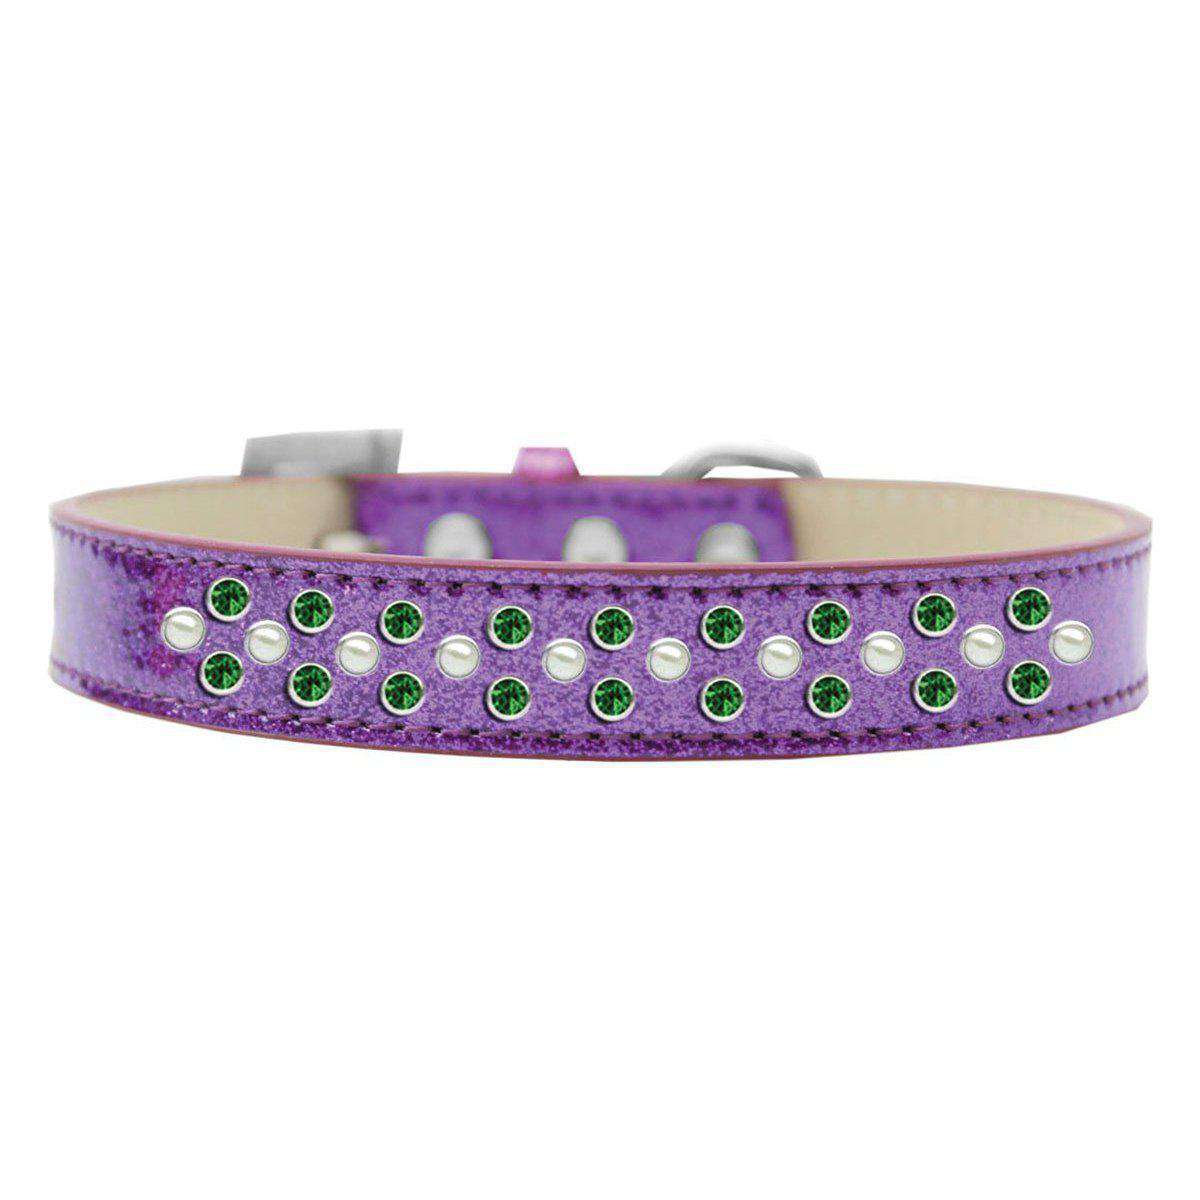 Mirage Pet Products Sprinkles Ice Cream Dog Collar Pearl And Emerald Green Crystals Size 12 - Purple-Mirage Pet Products-DirtyFurClothing